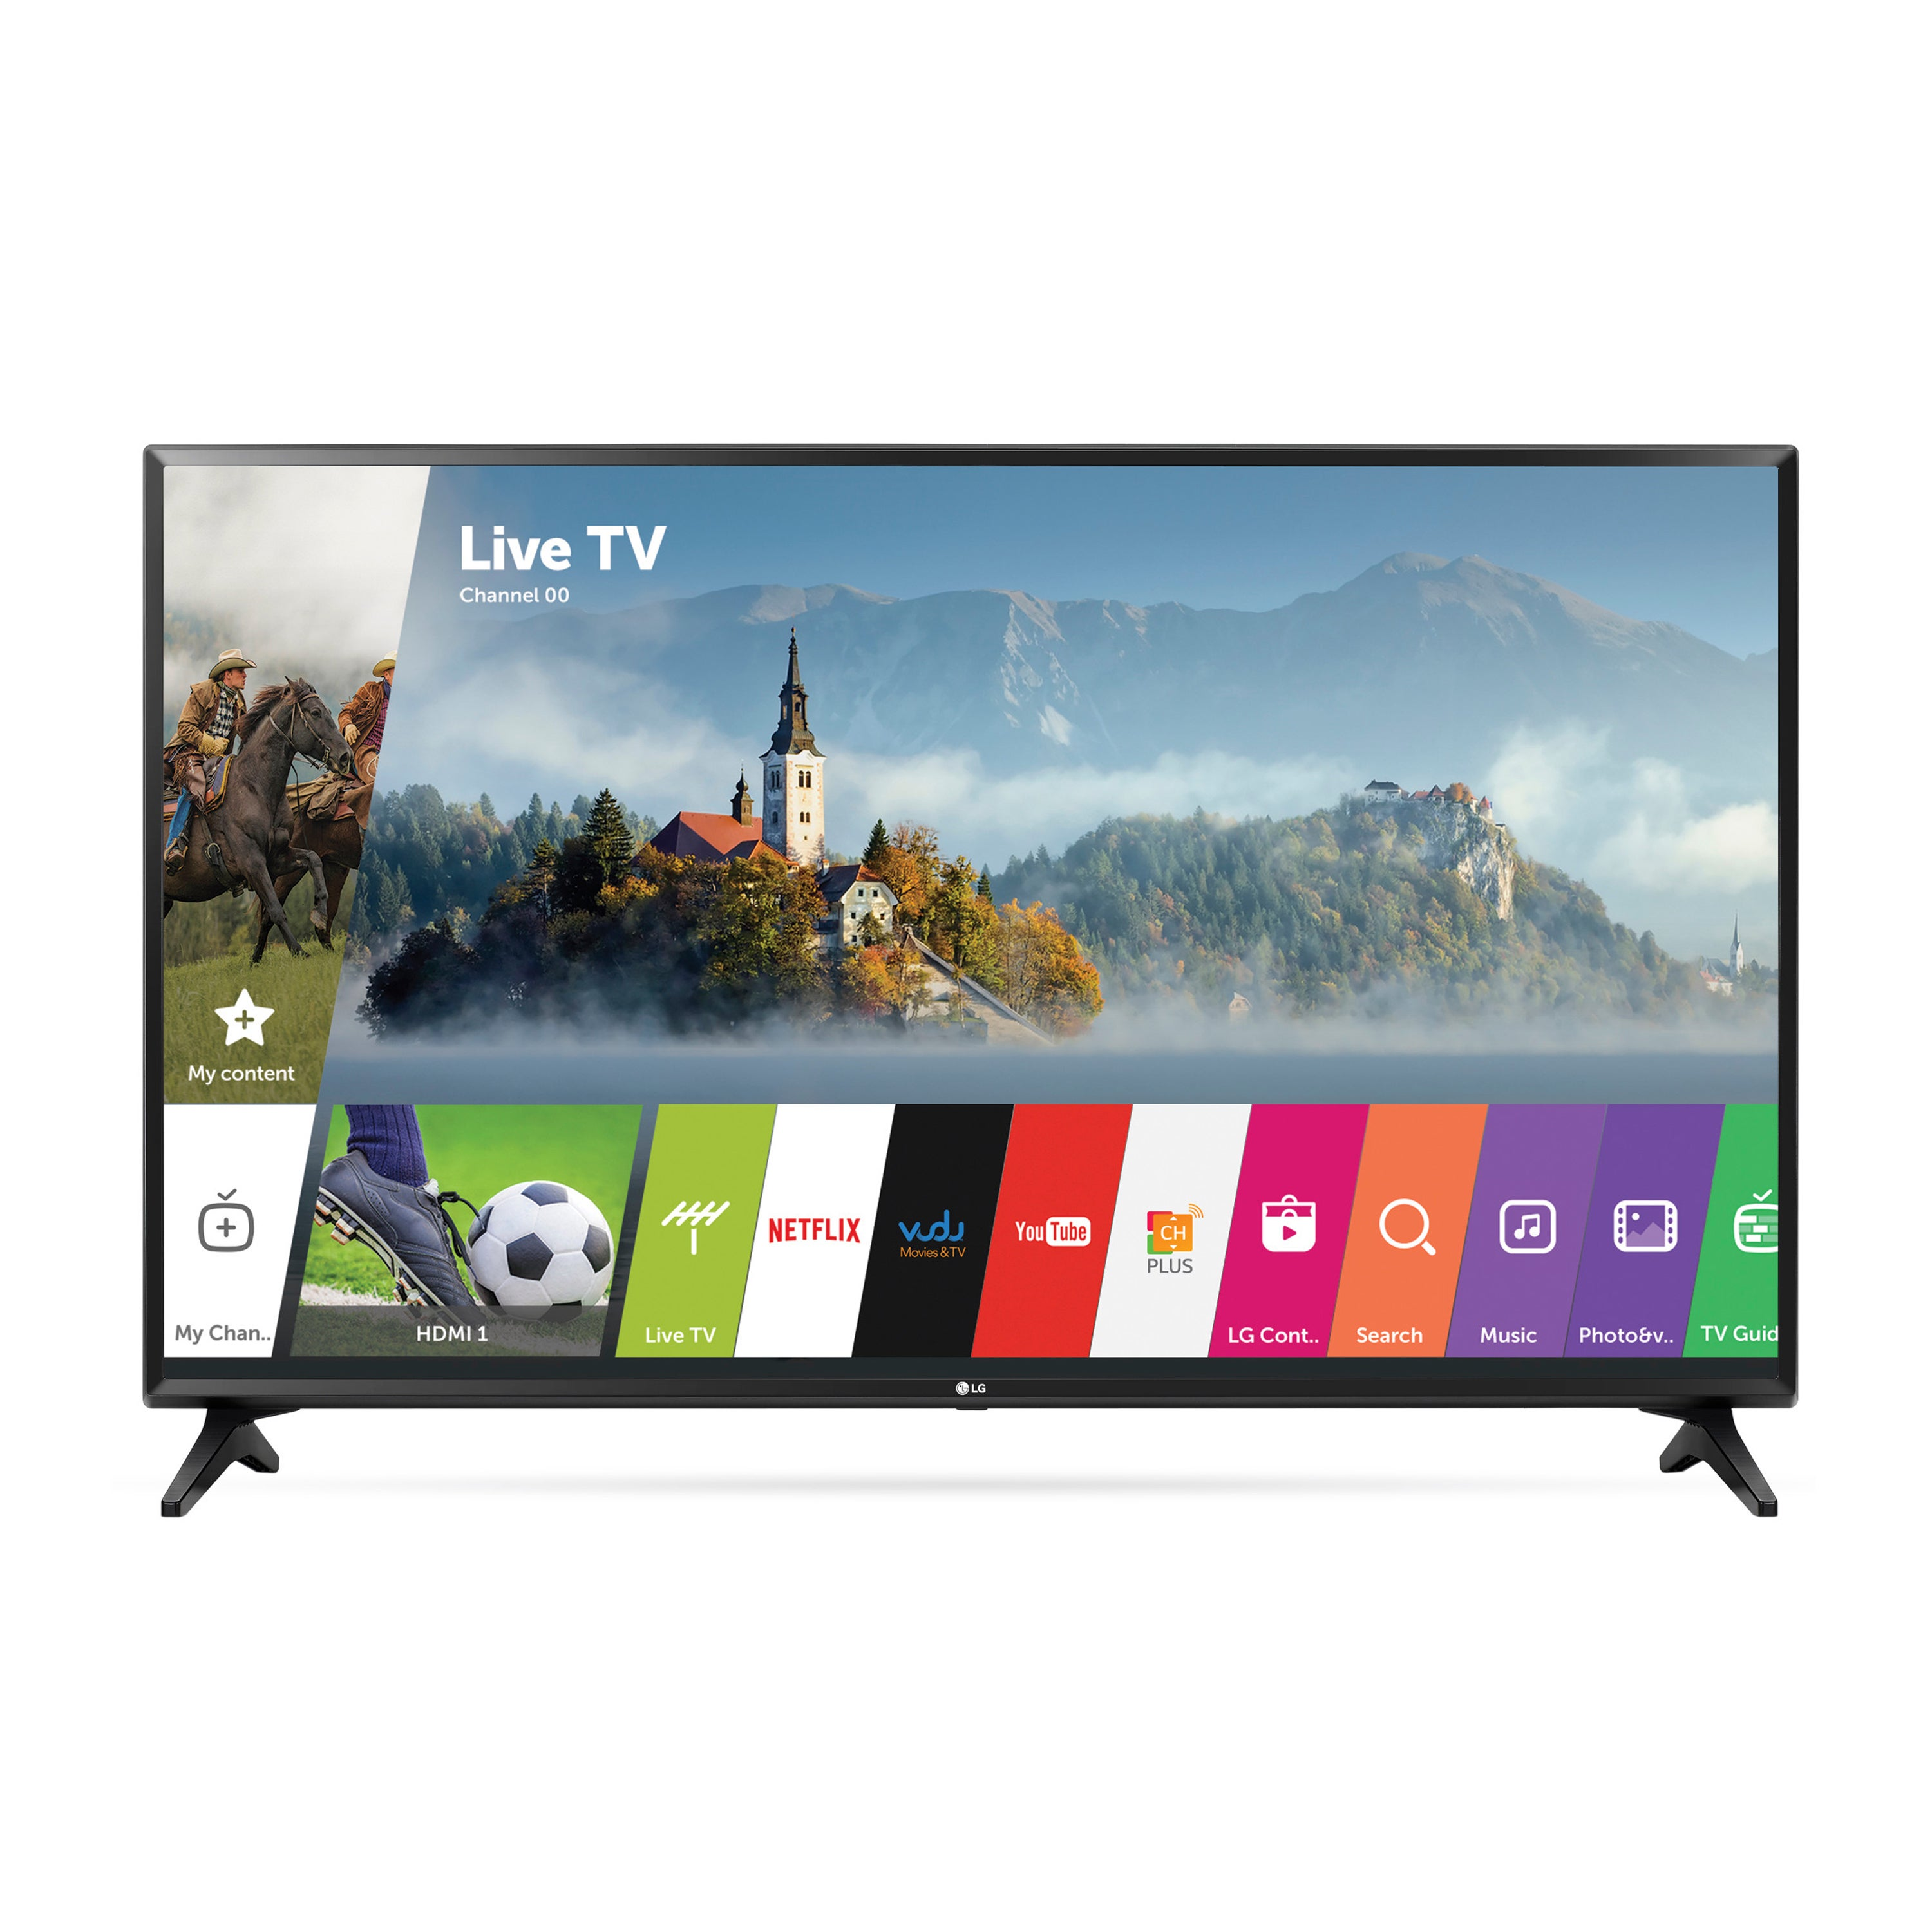 LG 43-inch Class 1080P LED 43LJ5500 Television with W Web...